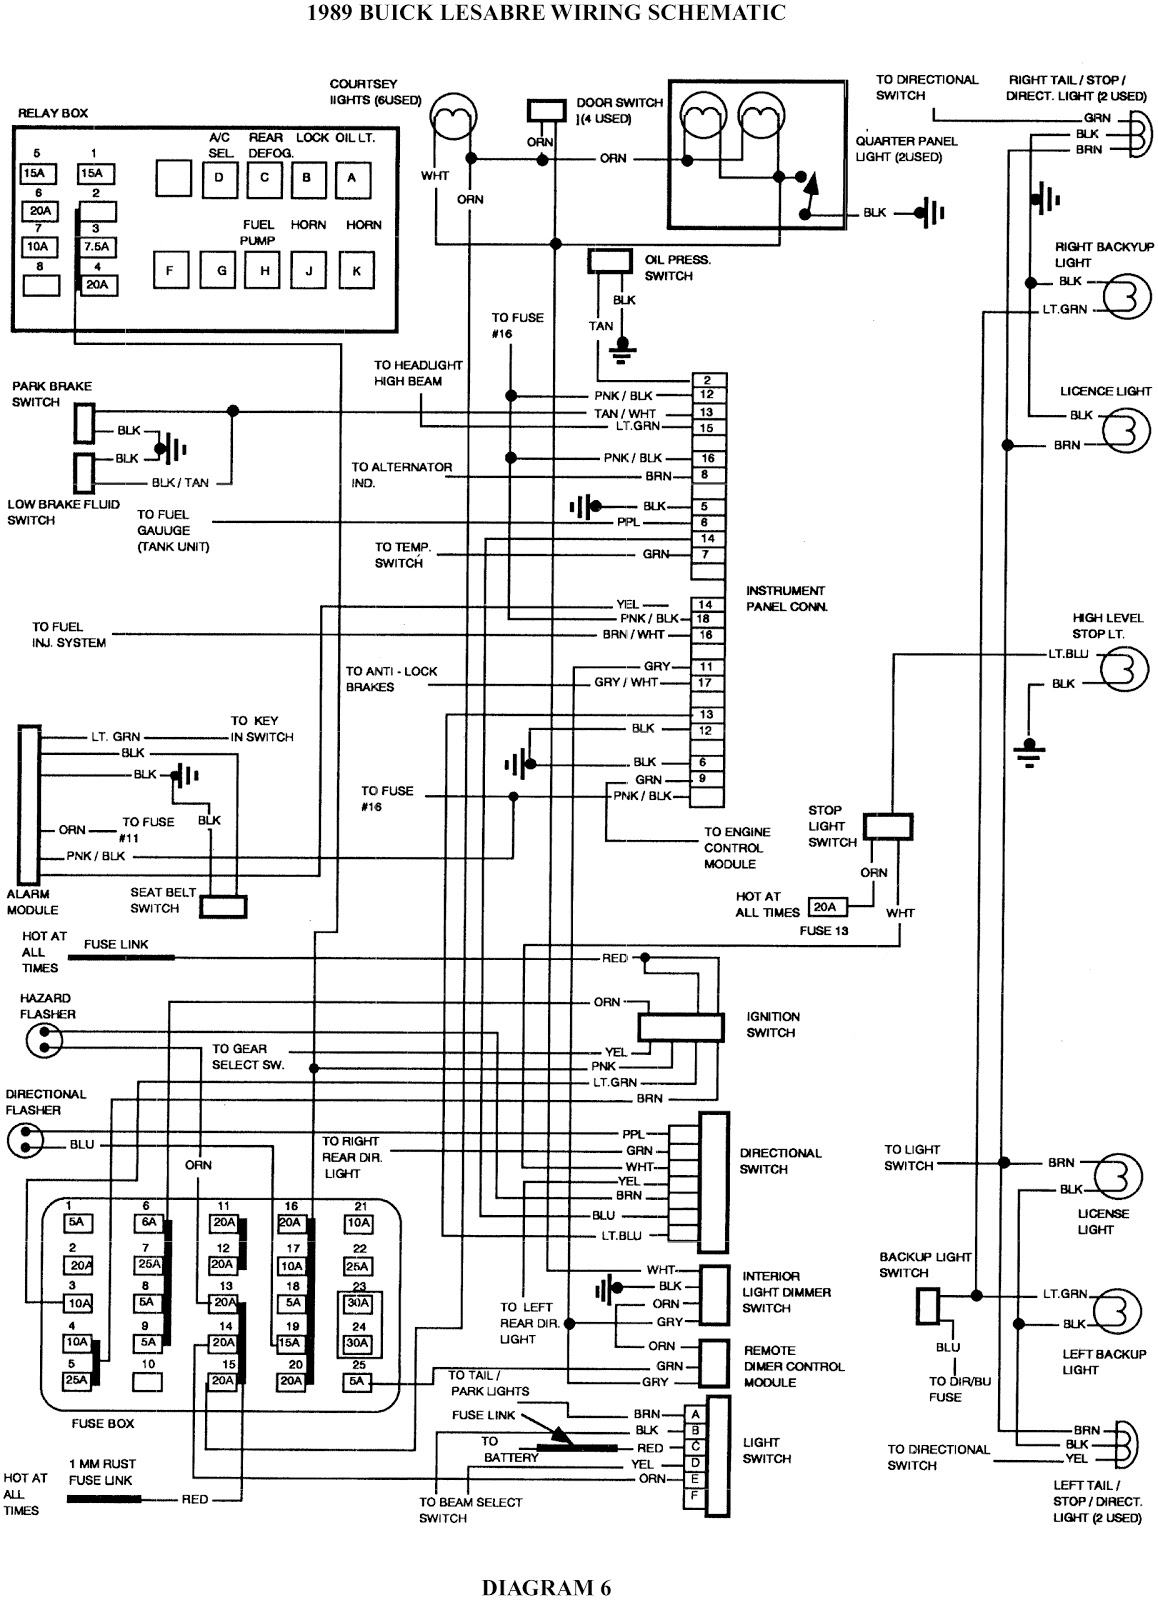 Chevy Hhr Fog Lights Wiring Diagram Com